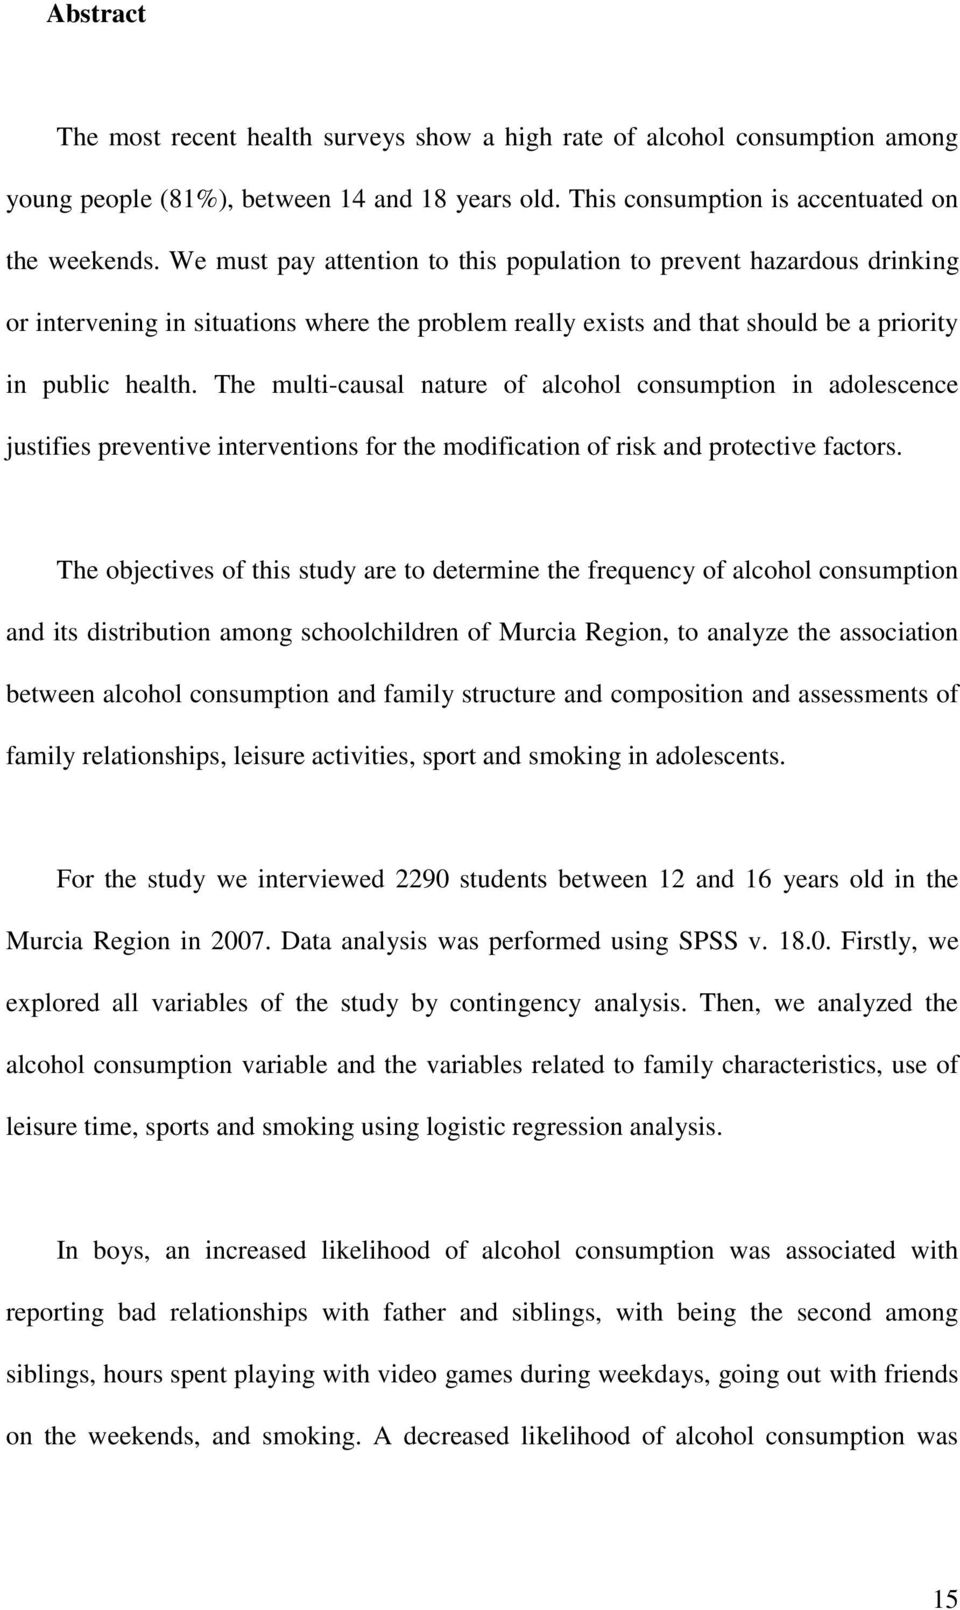 The multi-causal nature of alcohol consumption in adolescence justifies preventive interventions for the modification of risk and protective factors.